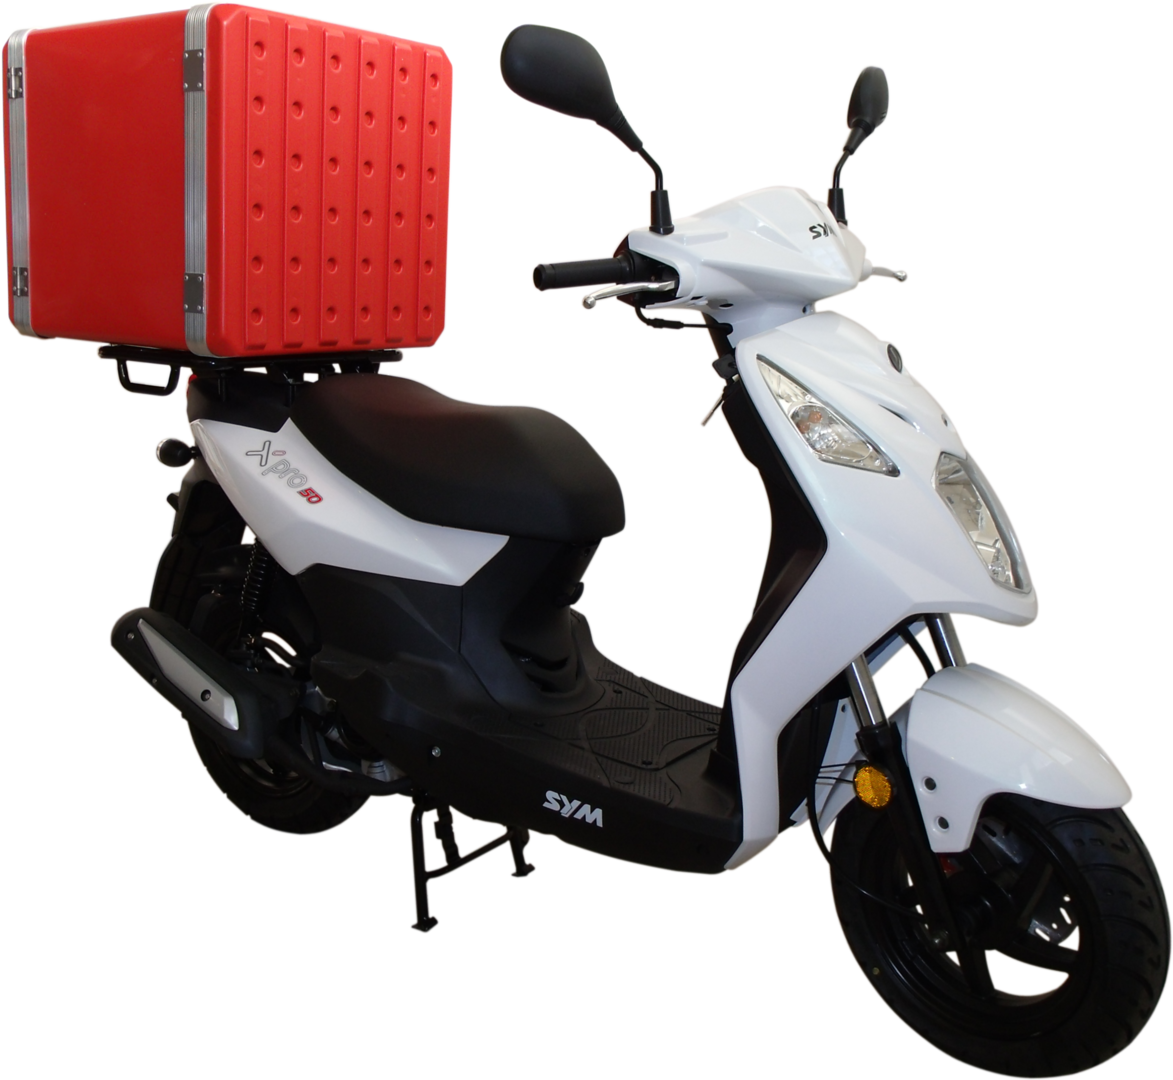 Scooter PNG image